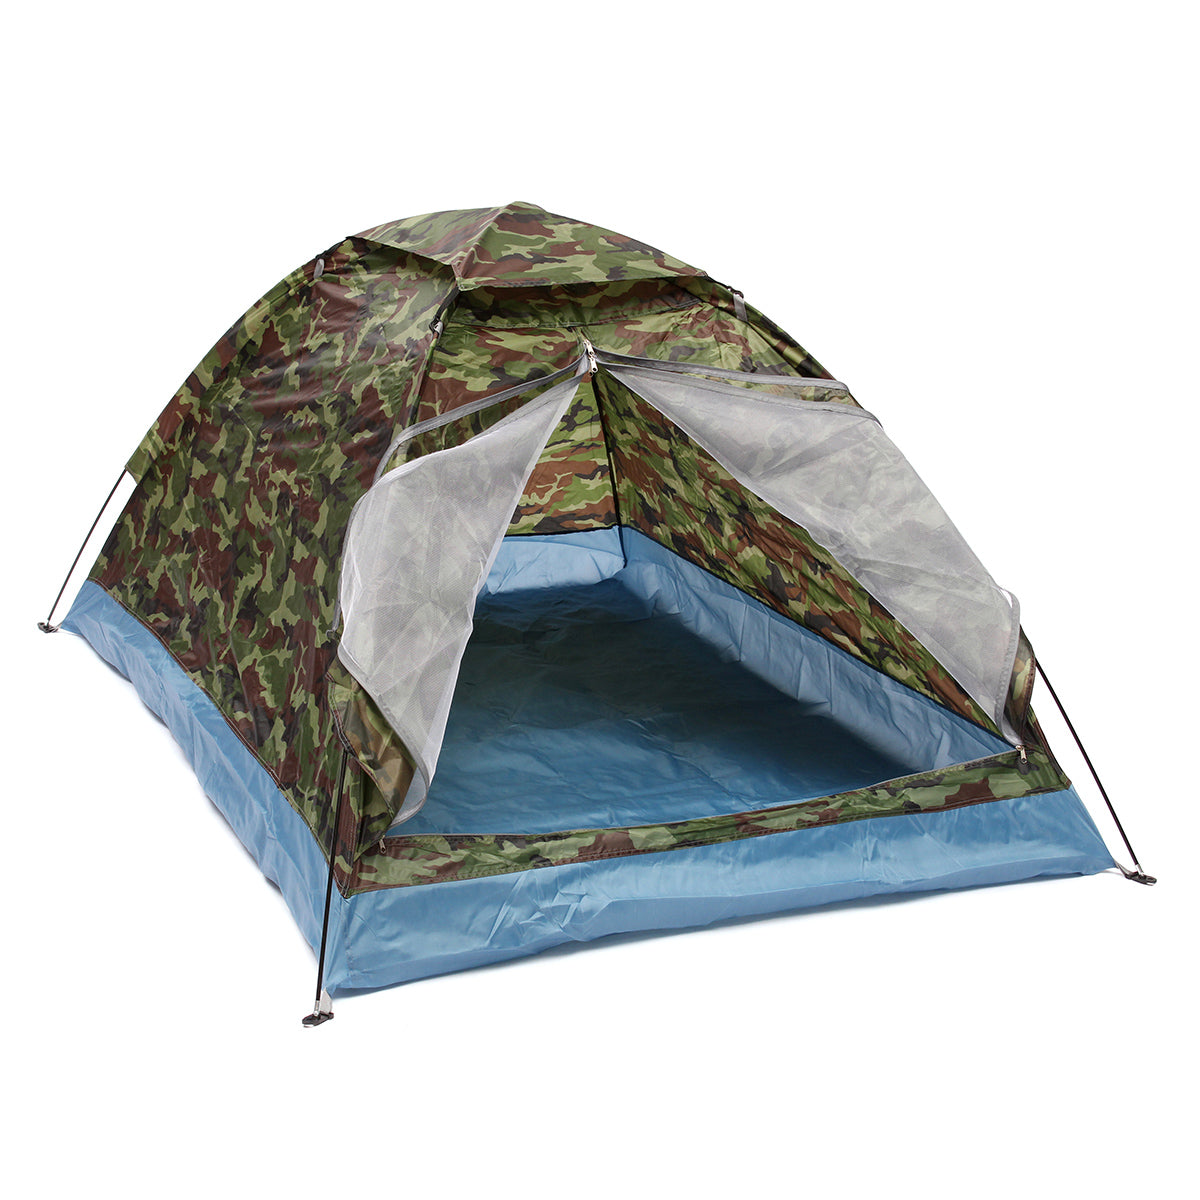 Camping Tents Outdoor 2 Man Waterproof Windproof UV Sunshade Easy Up Canopy Tent